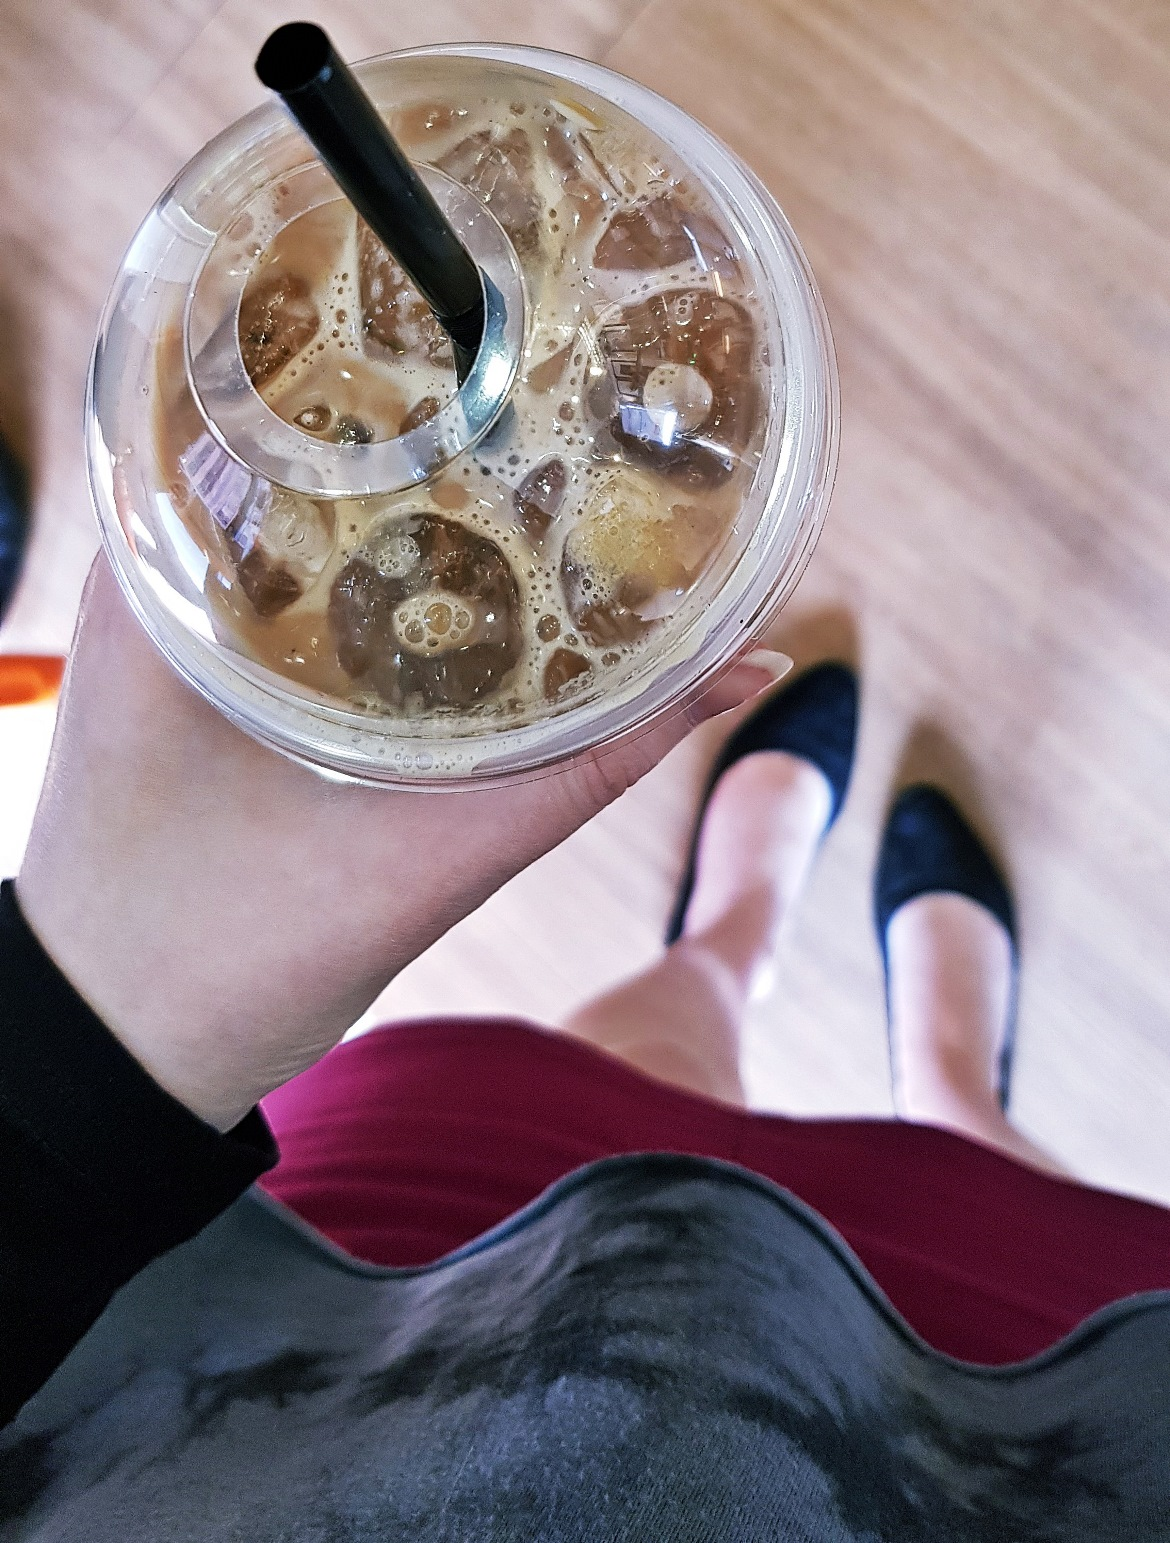 Iced latte - April 2018 Monthly Recap by BeckyBecky Blogs